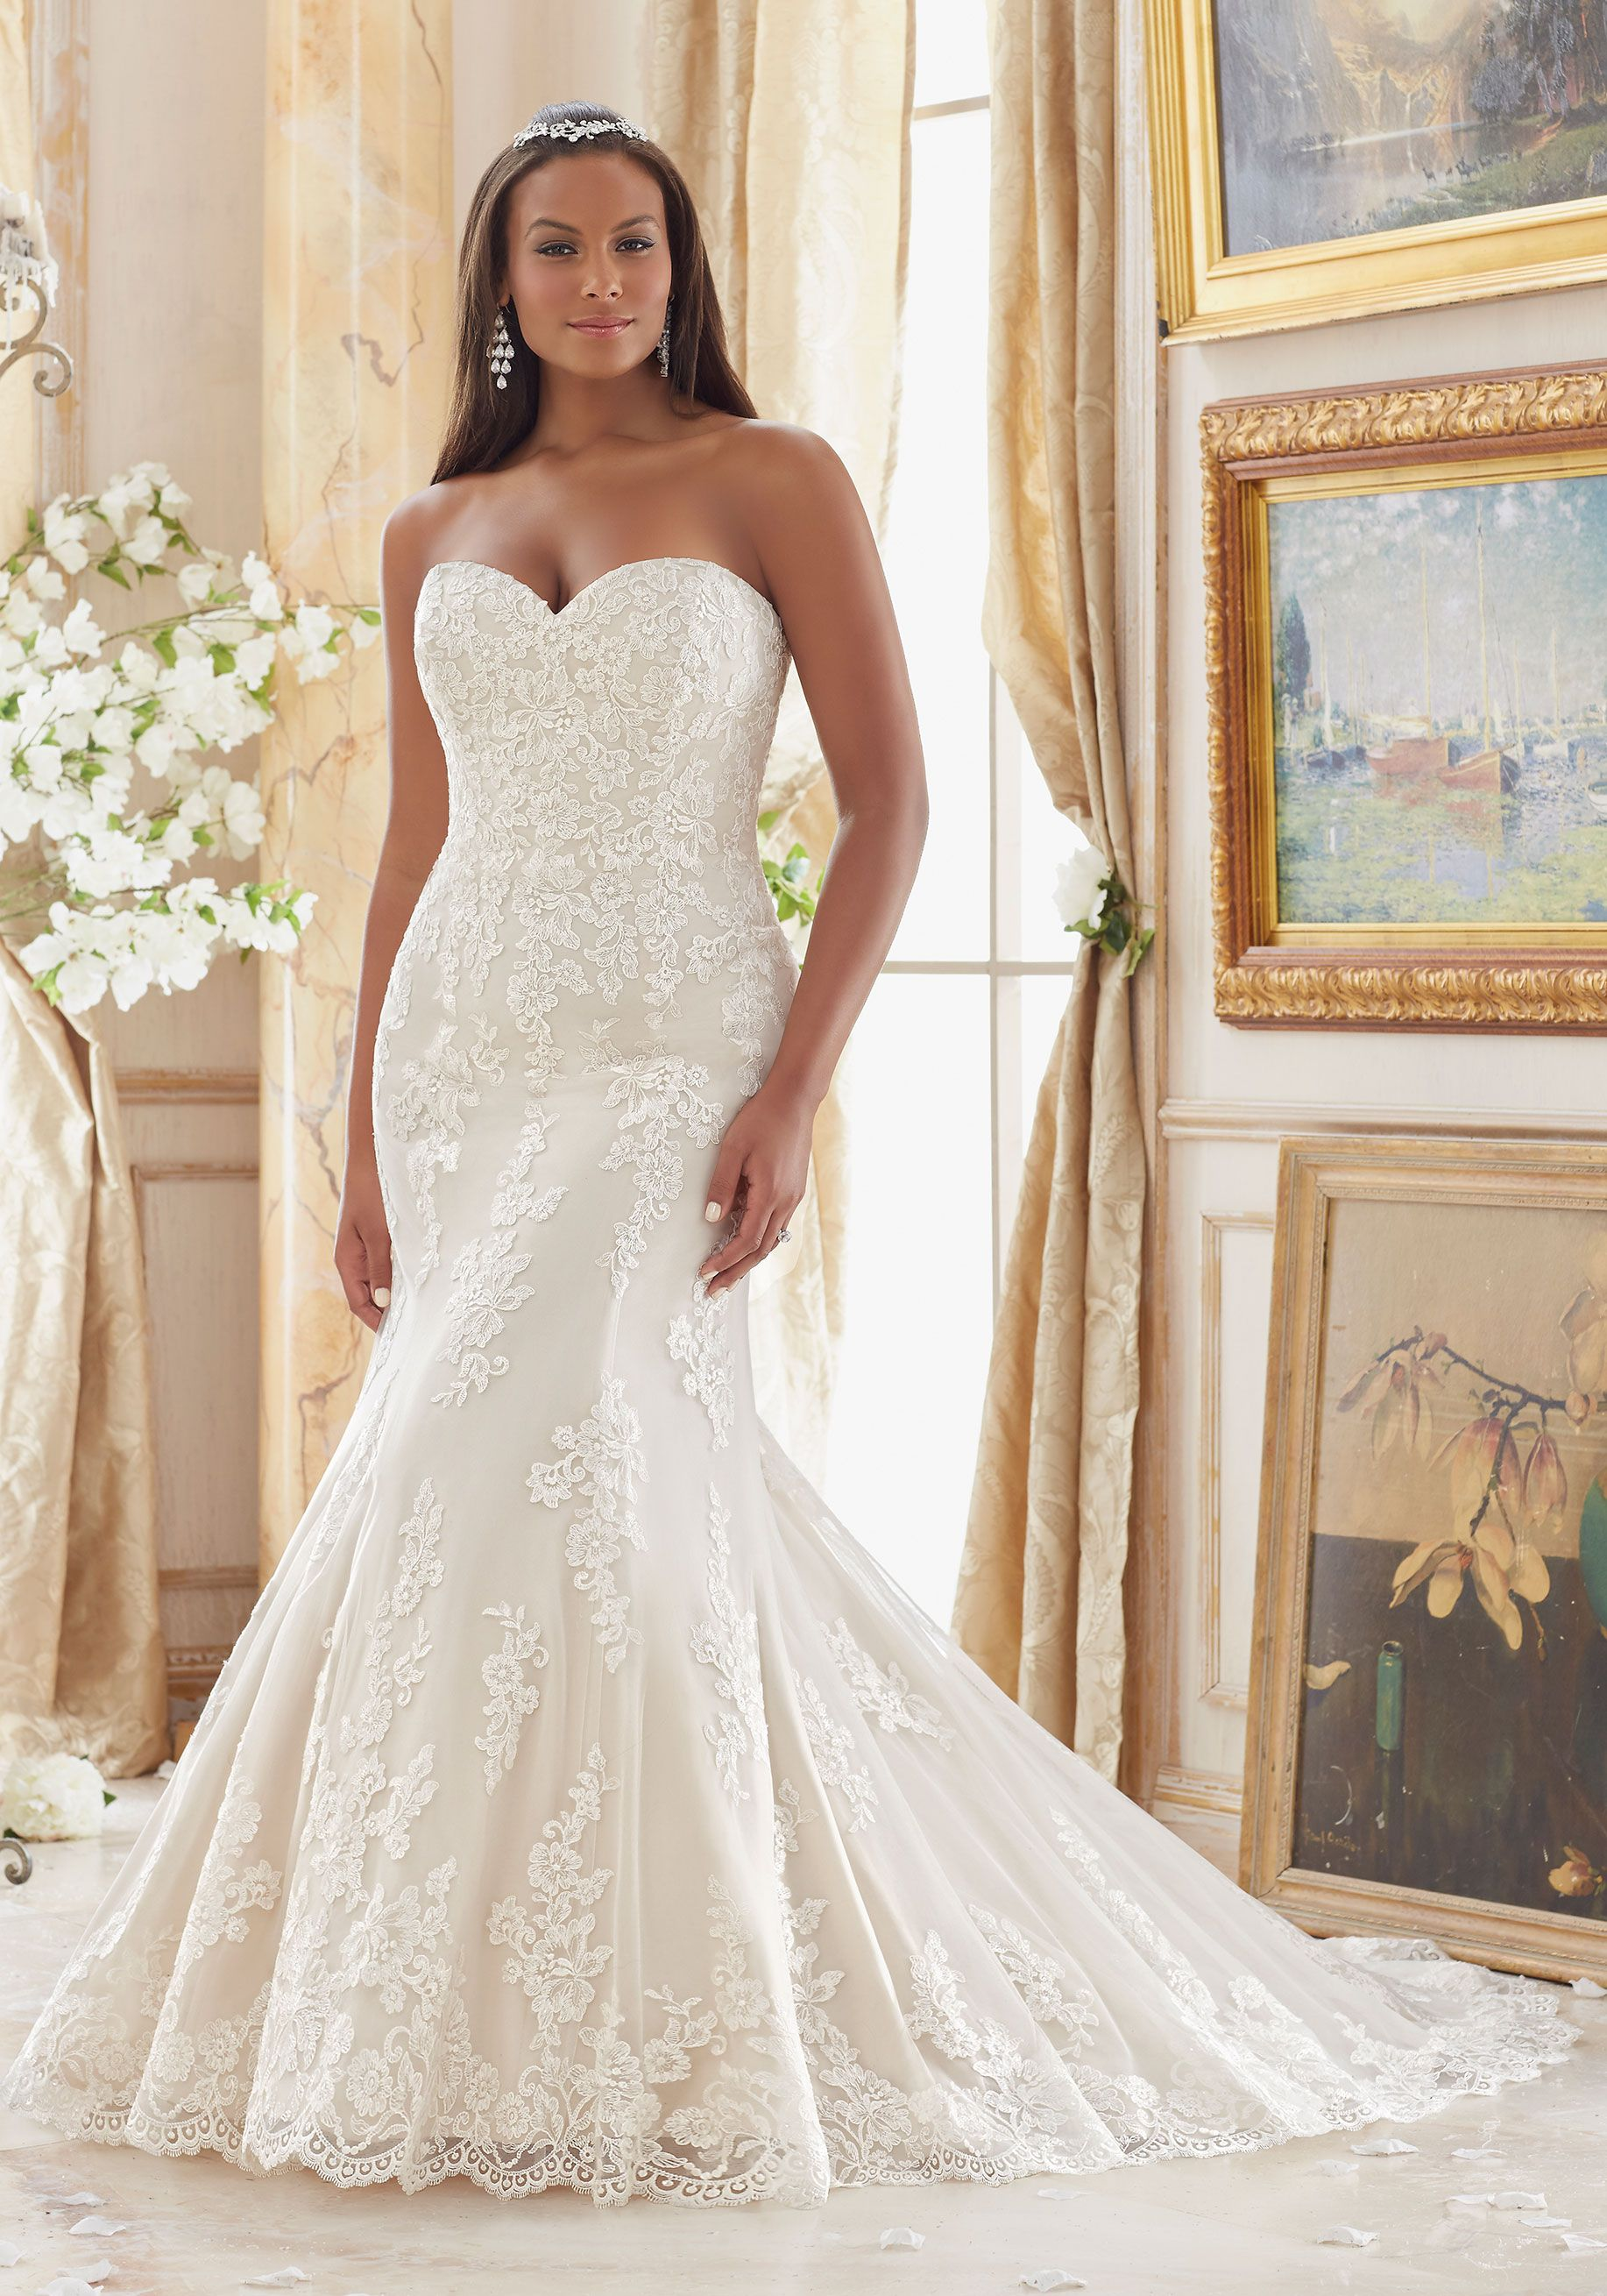 Embroidered Lace Appliques On Tulle With Scalloped Hemline Plus Size Wedding Dress Designed By Wedding Dress Brands Wedding Dress Styles Mori Lee Wedding Dress [ 2620 x 1834 Pixel ]